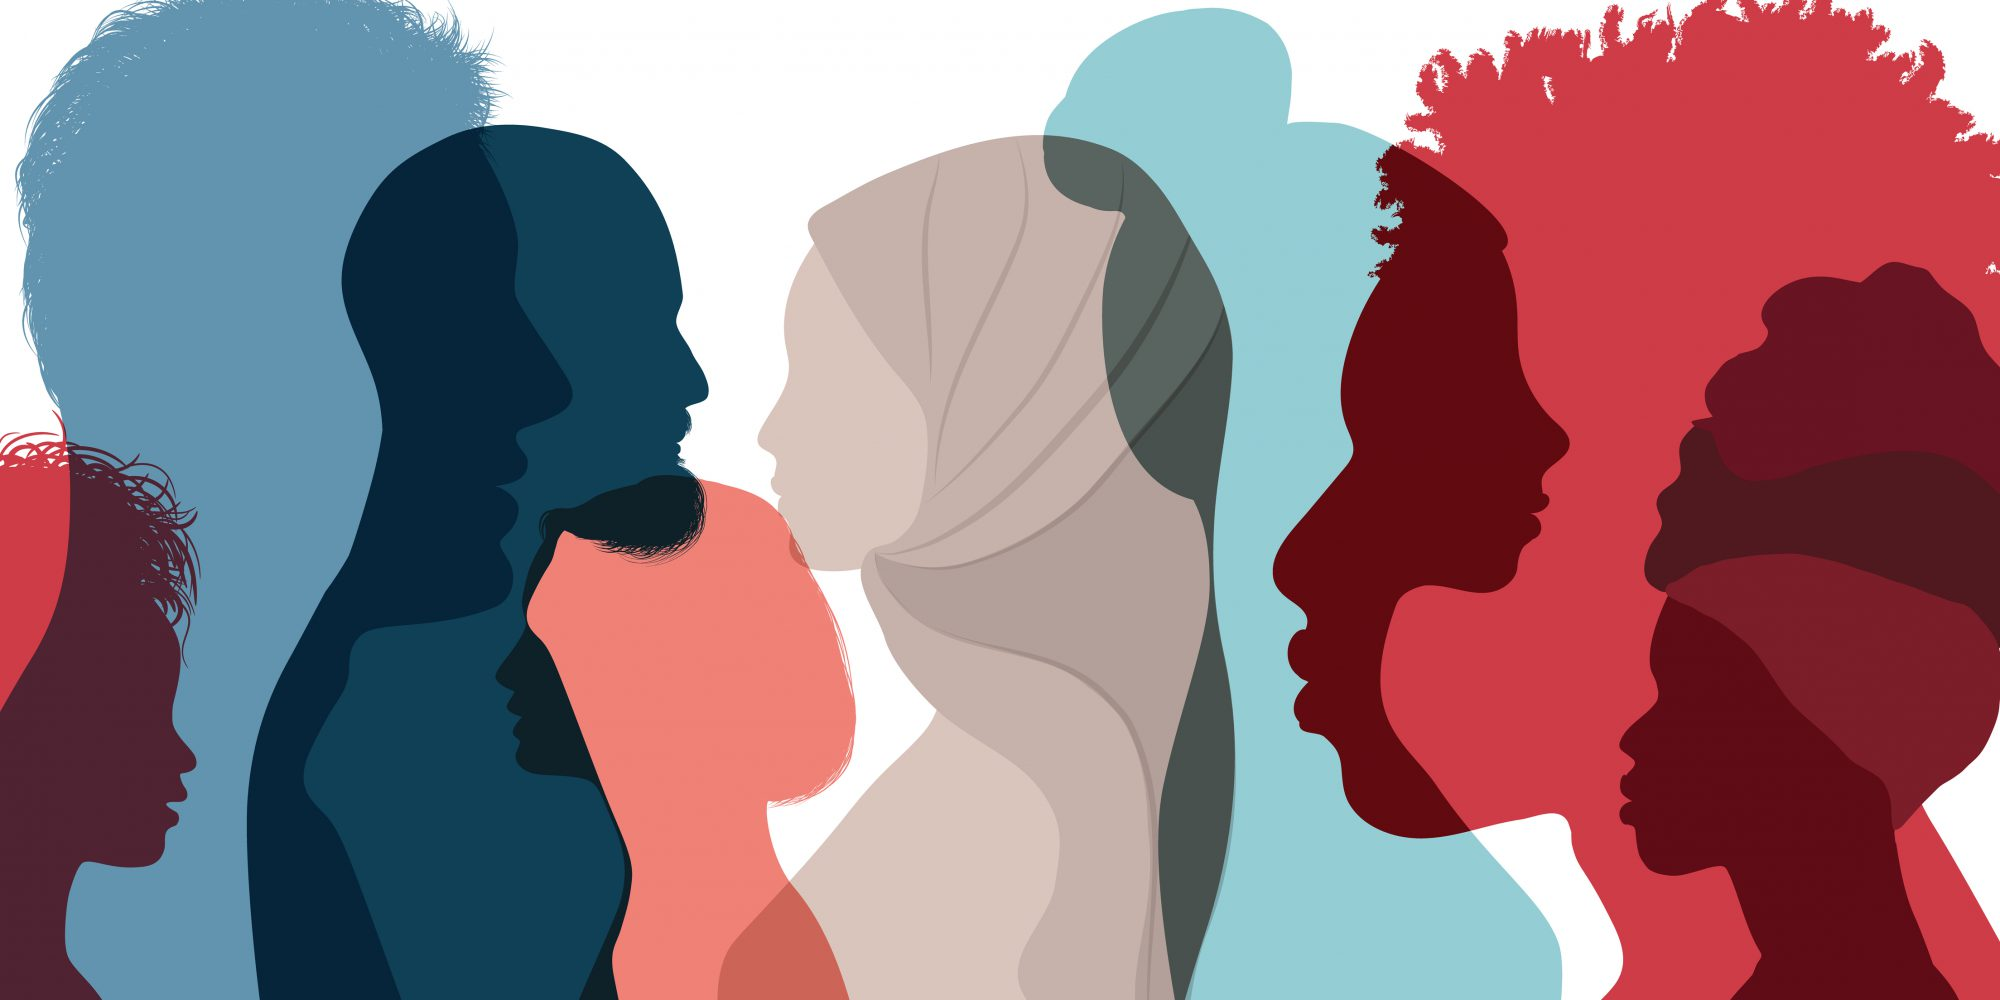 Silhouette,Profile,Group,Of,Men,And,Women,Of,Diverse,Culture.